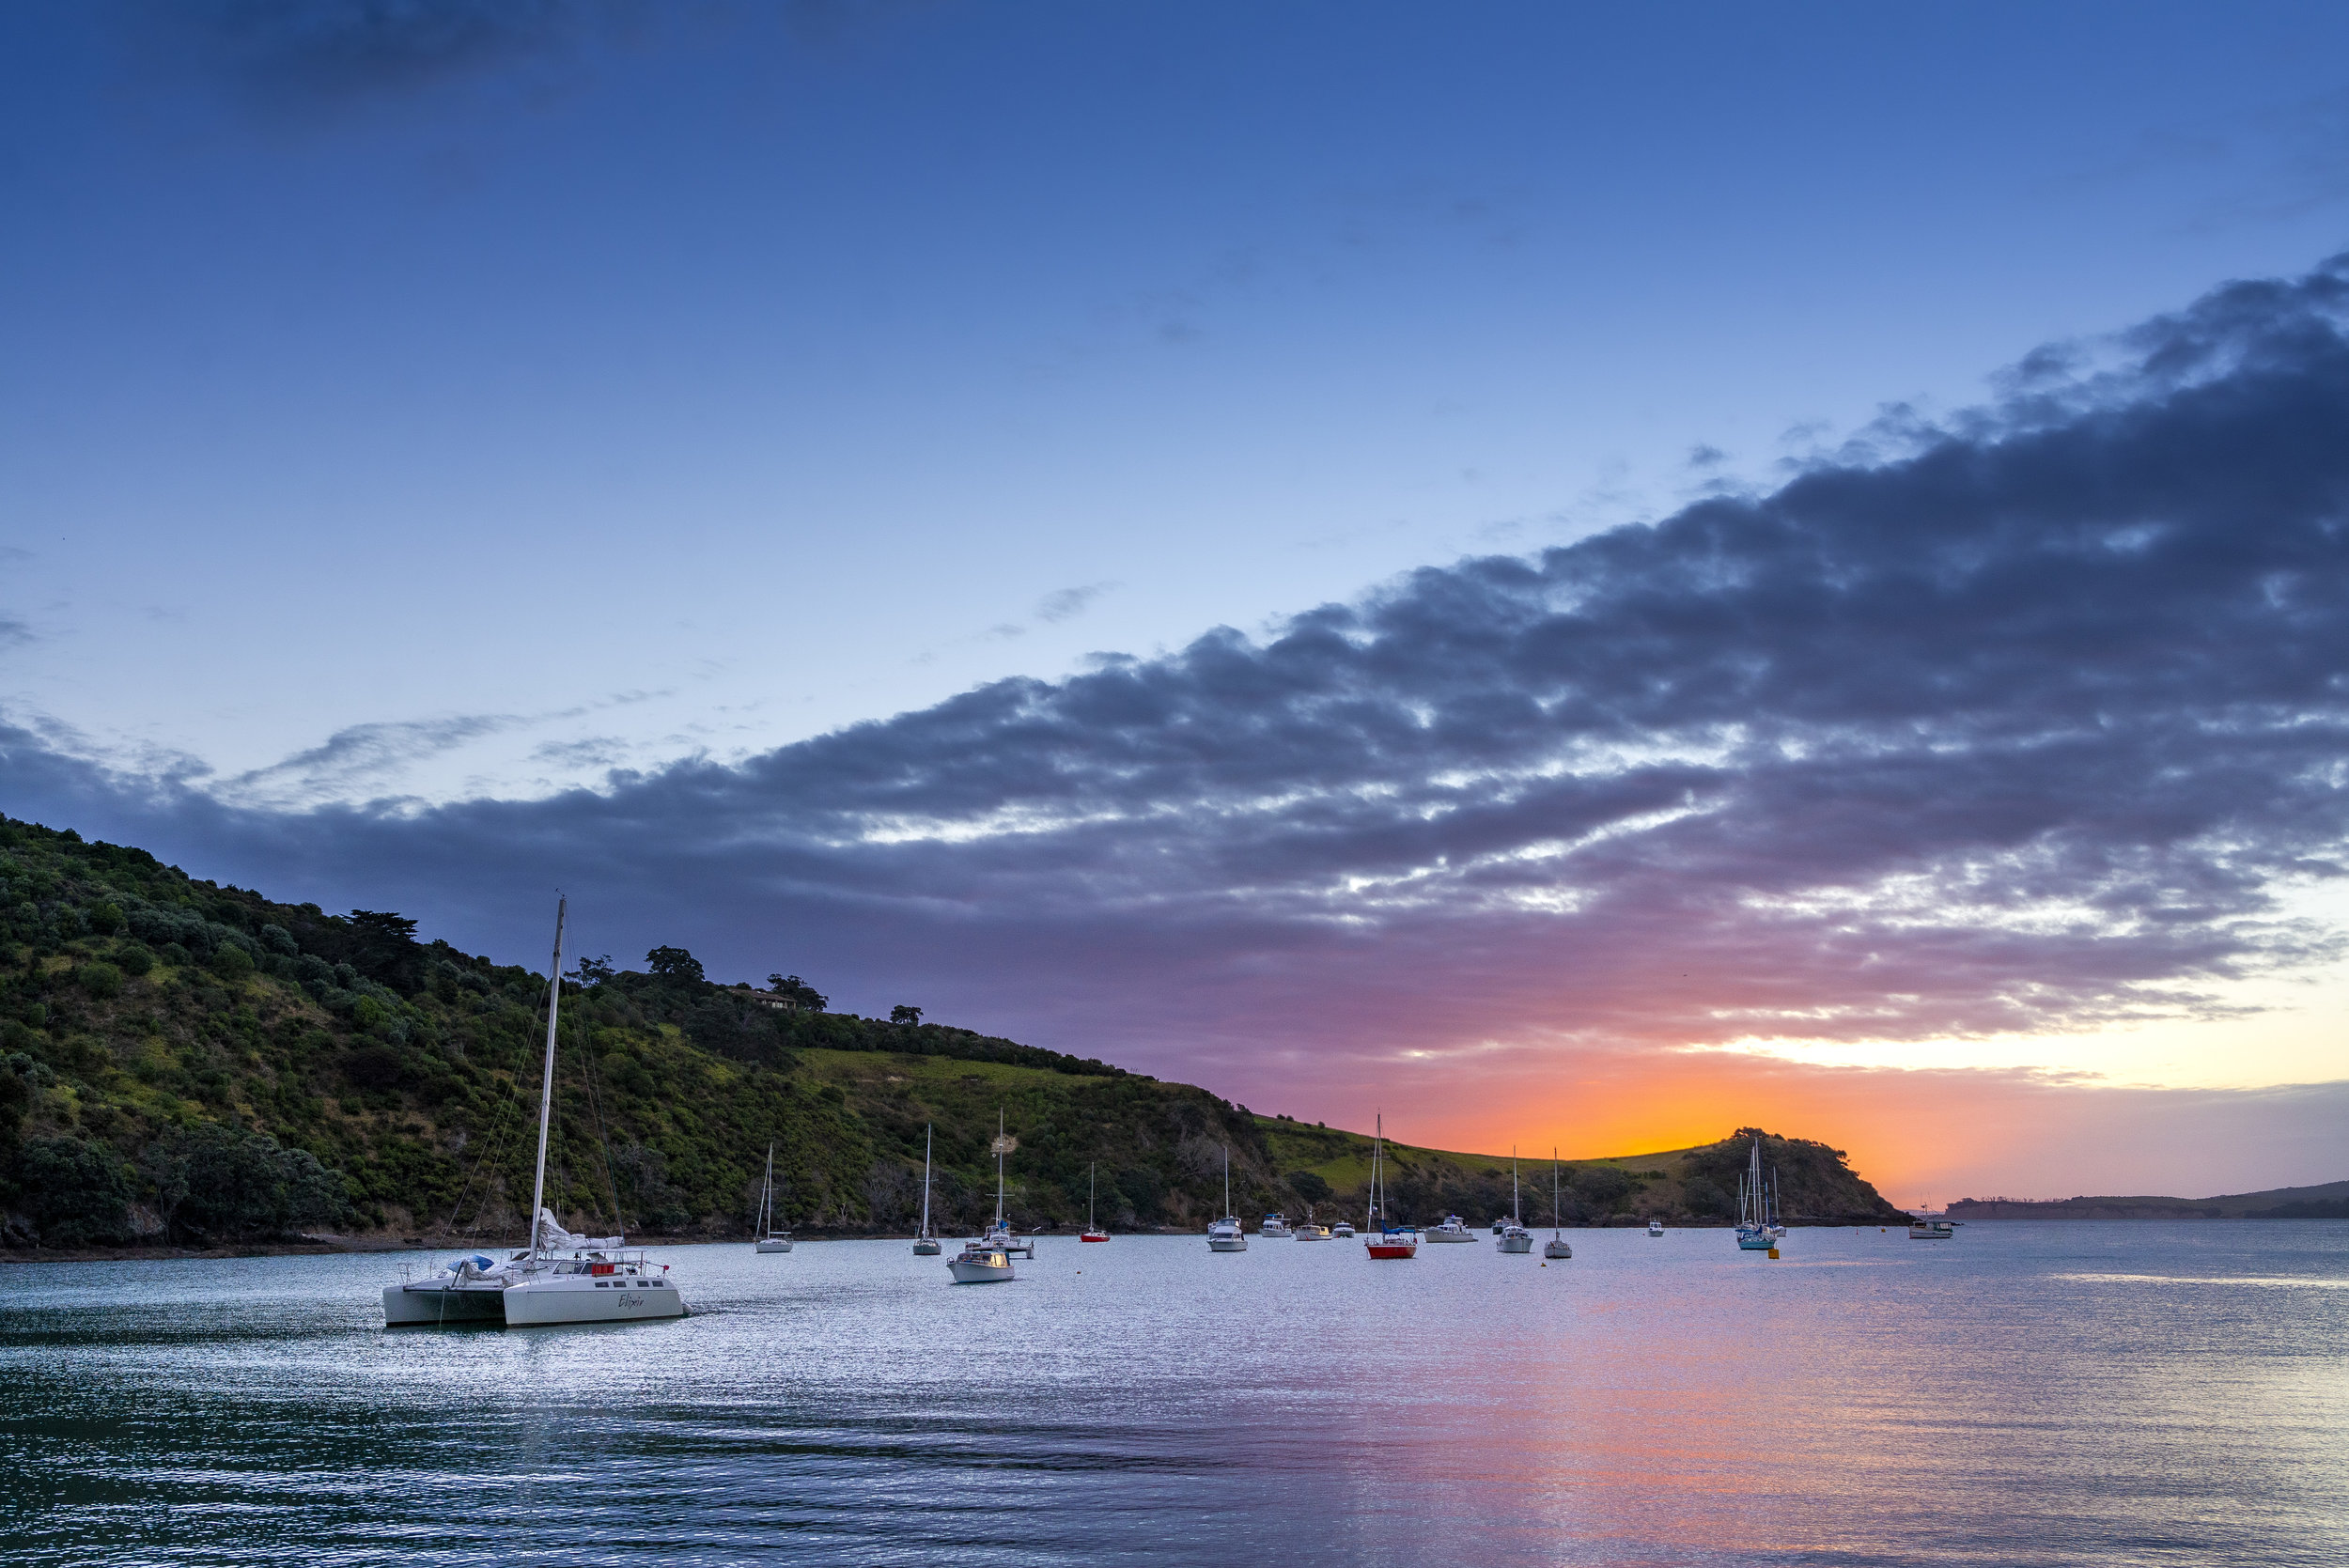 Waiheke Island is painted in an array of colors as the sun begins to set on the island. (Elise Marie Photography)